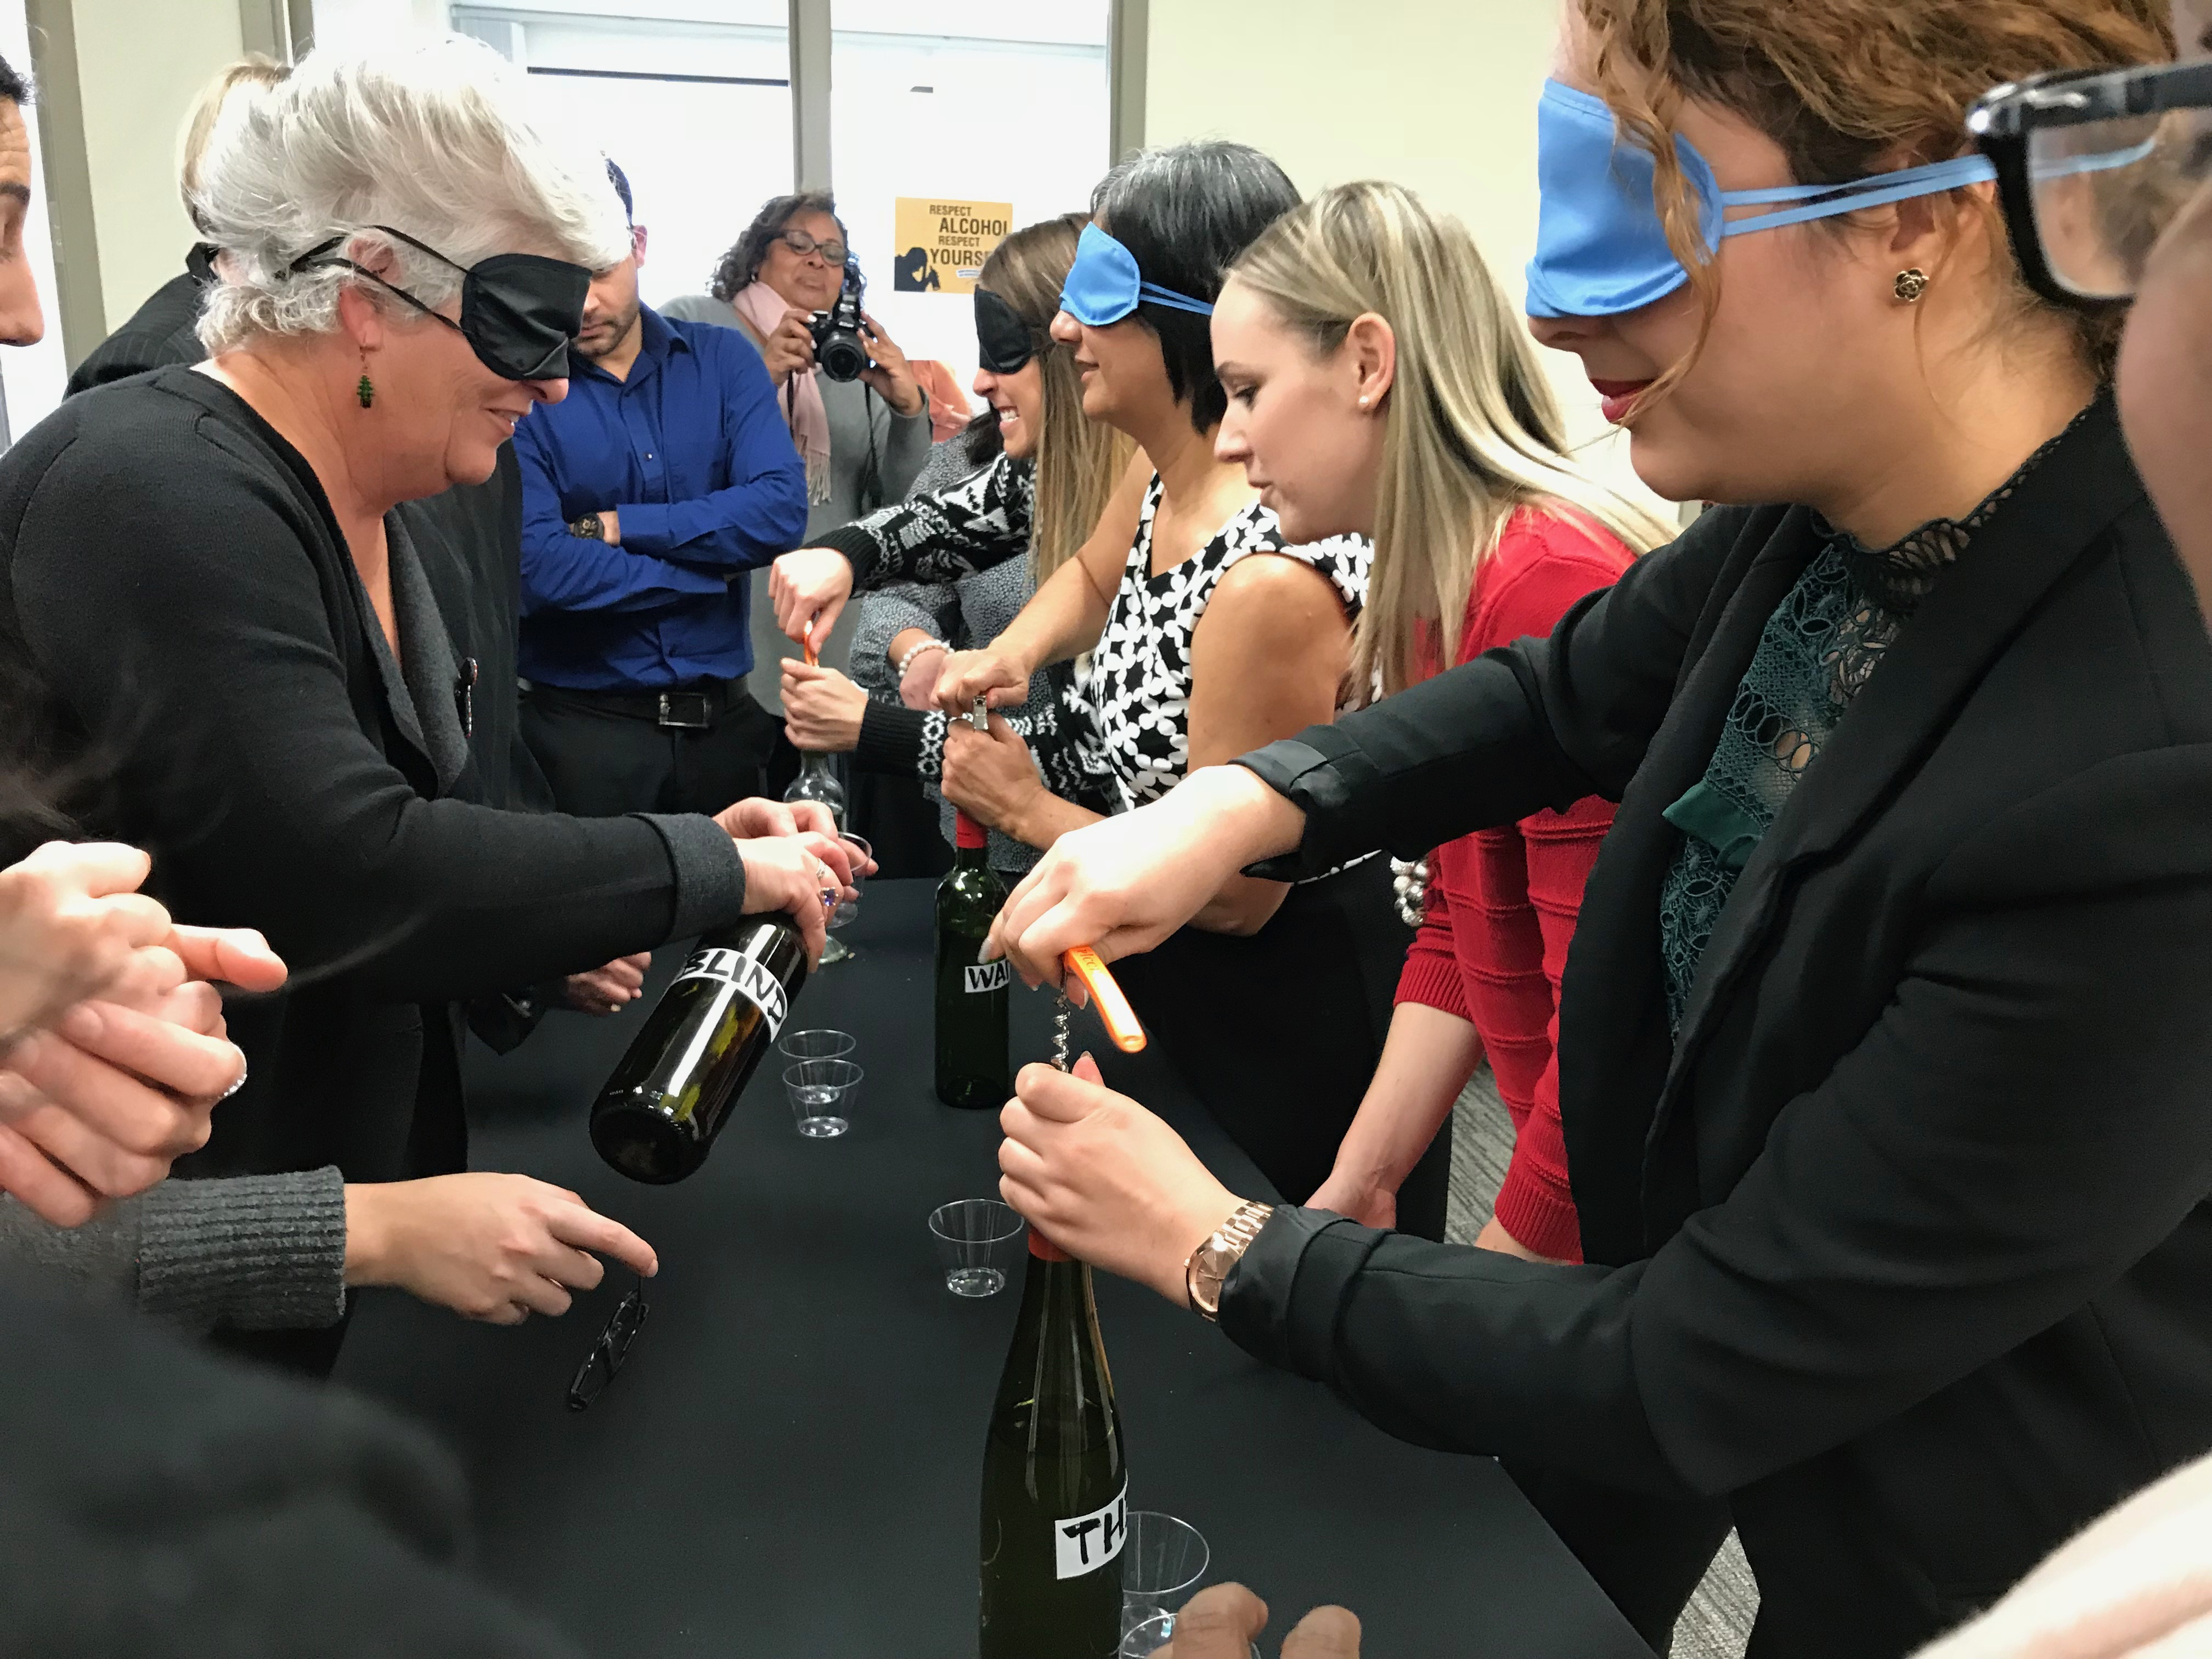 wine tasting games being played while participants are blindfolded